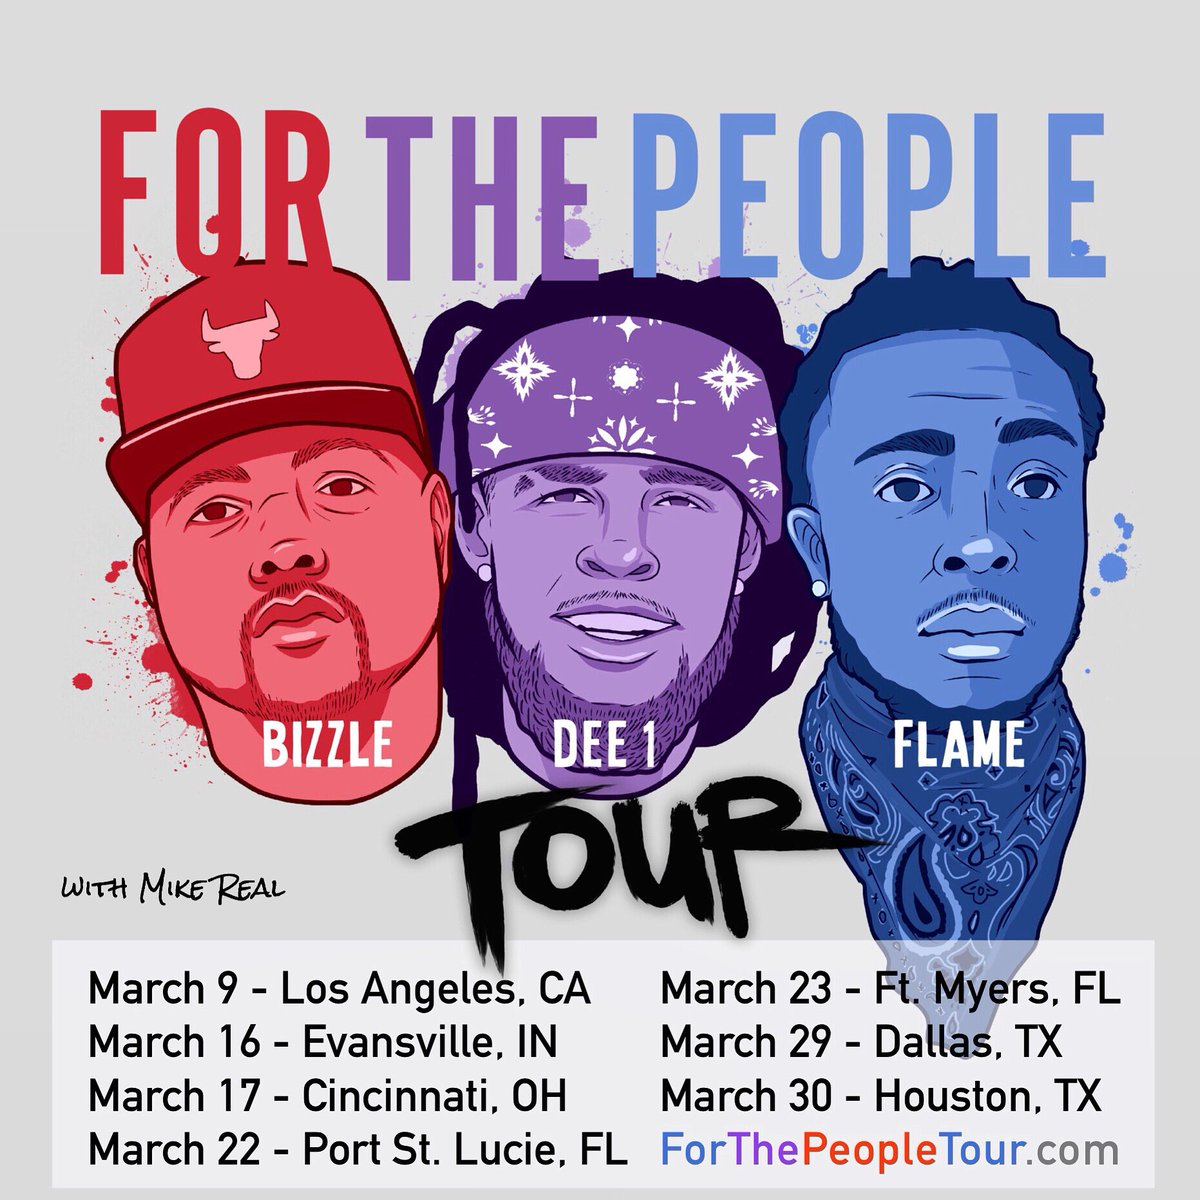 Coming to a city near you!  No Gimmicks! No Tricks! No Politics! Bringing the truth straight to the people! http://ForThePeopleTour.com